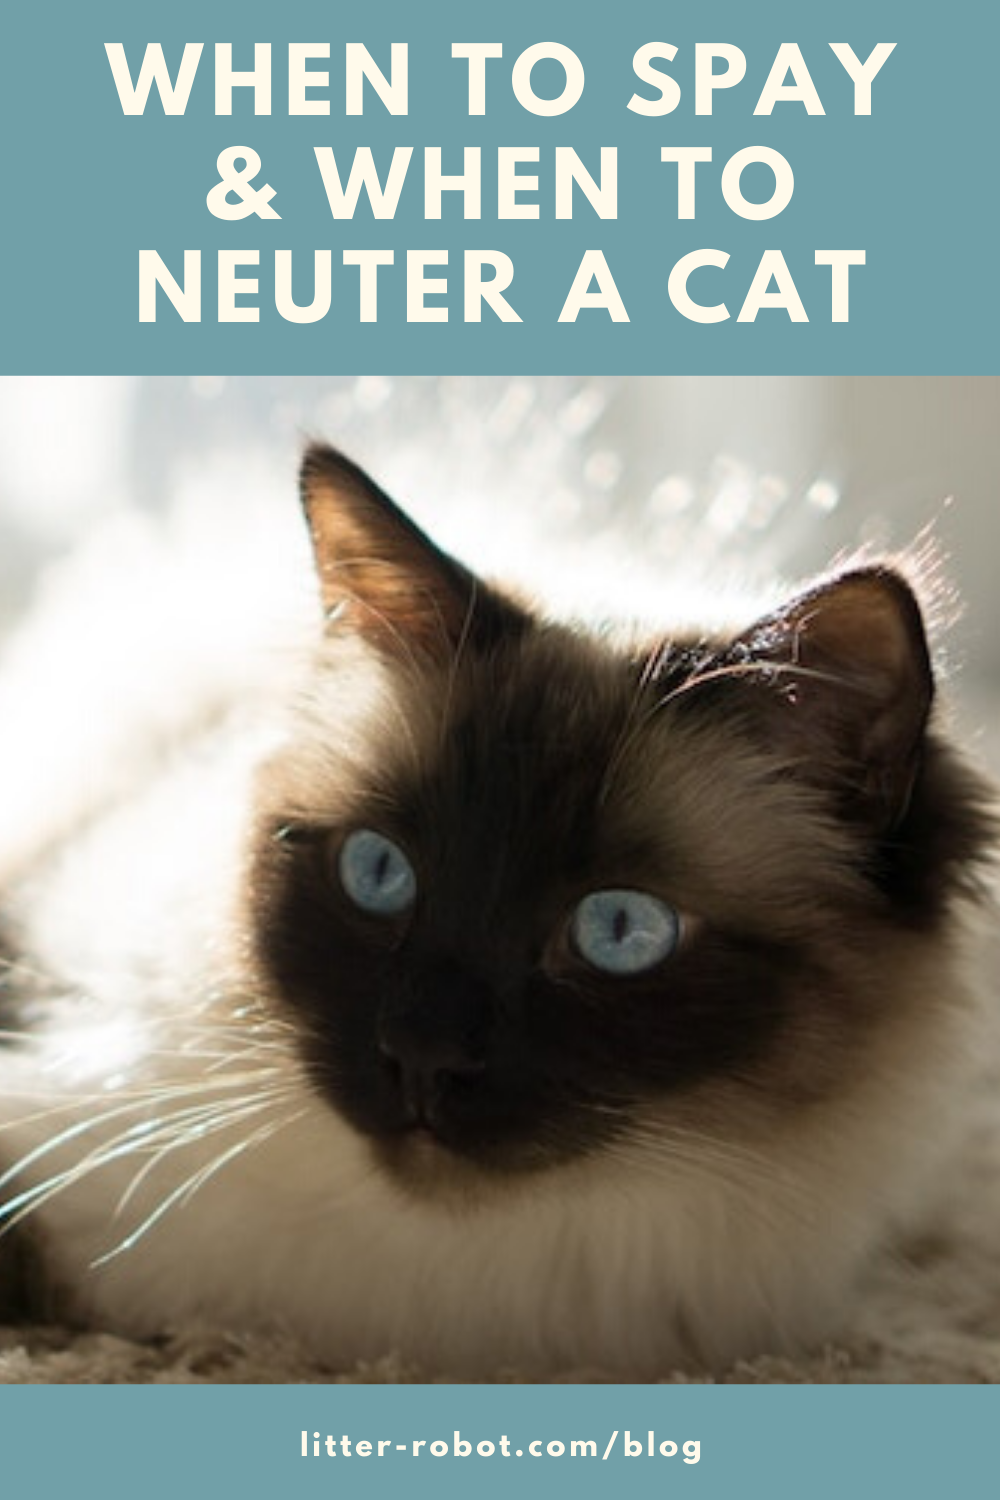 When To Spay When To Neuter A Cat Litter Robot Blog In 2020 Cats Cancer In Cats Neuter